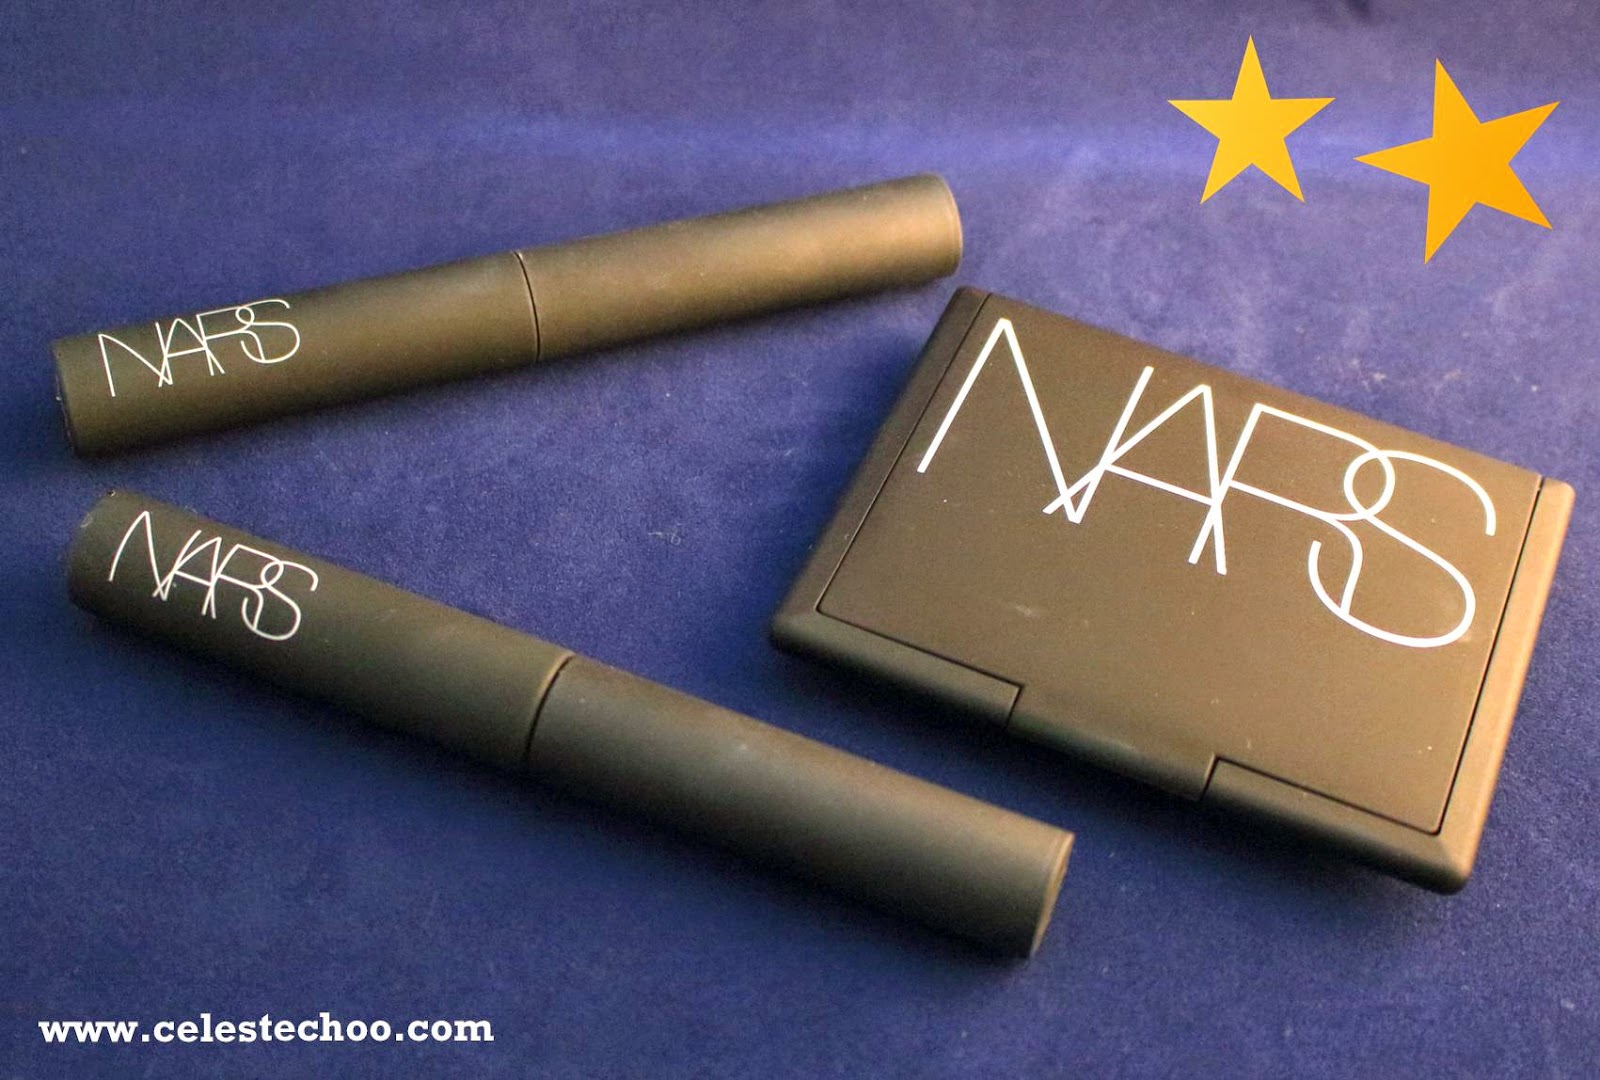 image-nars-contour-blush-makeup-with-mascaras-beauty-blog